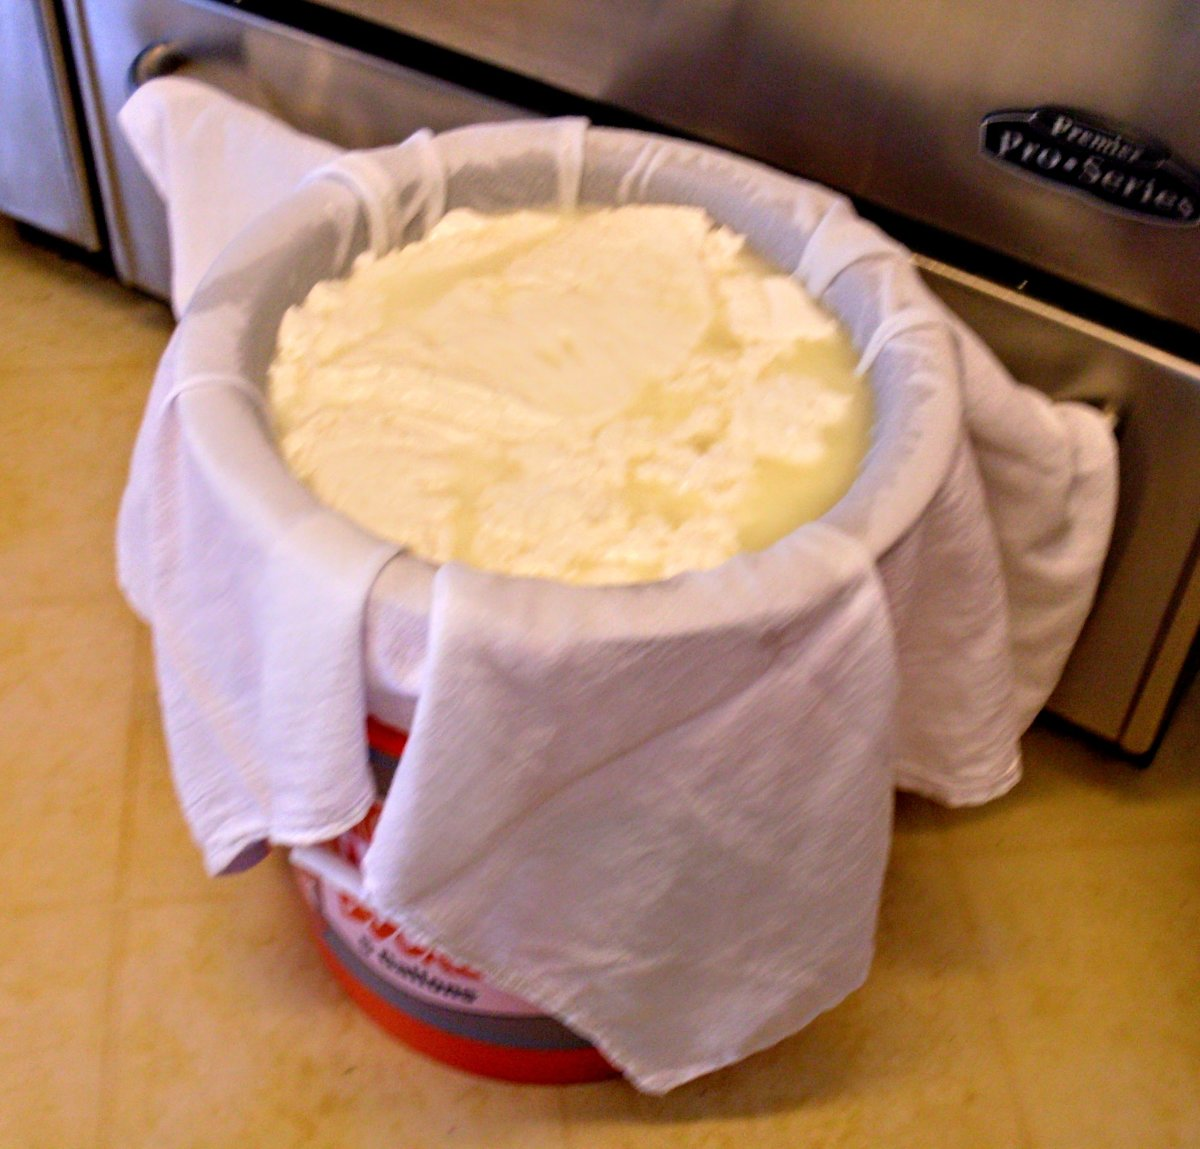 My cheese press will handle up to 2 small stock pots of curds at a time, or almost 4 gallons of milk total.